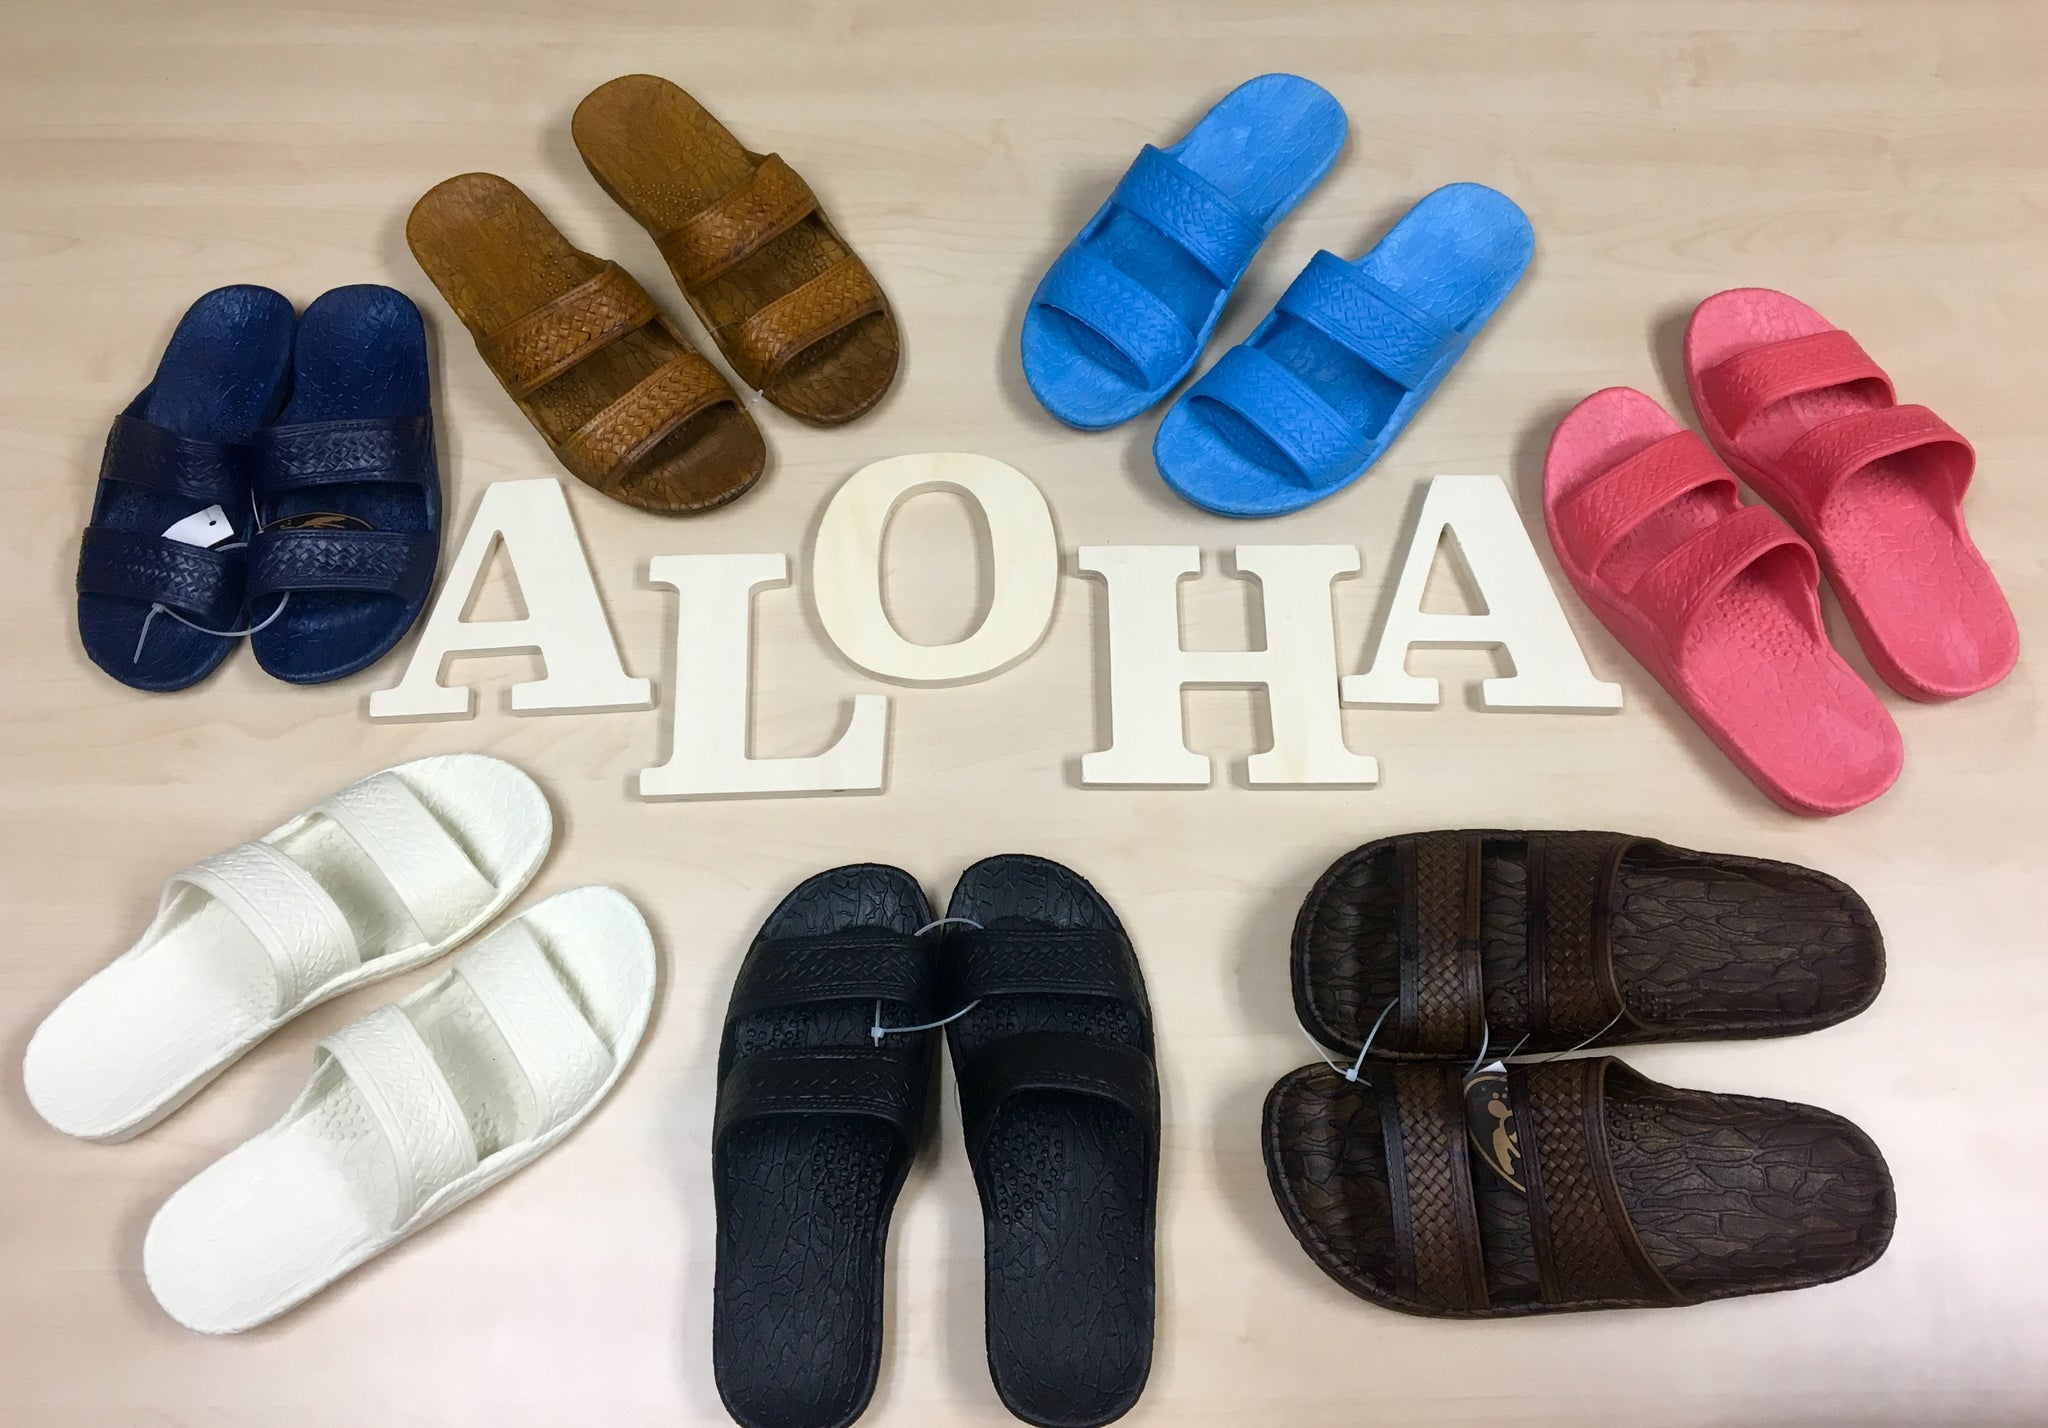 ce170271b Pali Hawaii Sandals Eight Jandel Colors Jesus Sandals - AlohaShoes.com